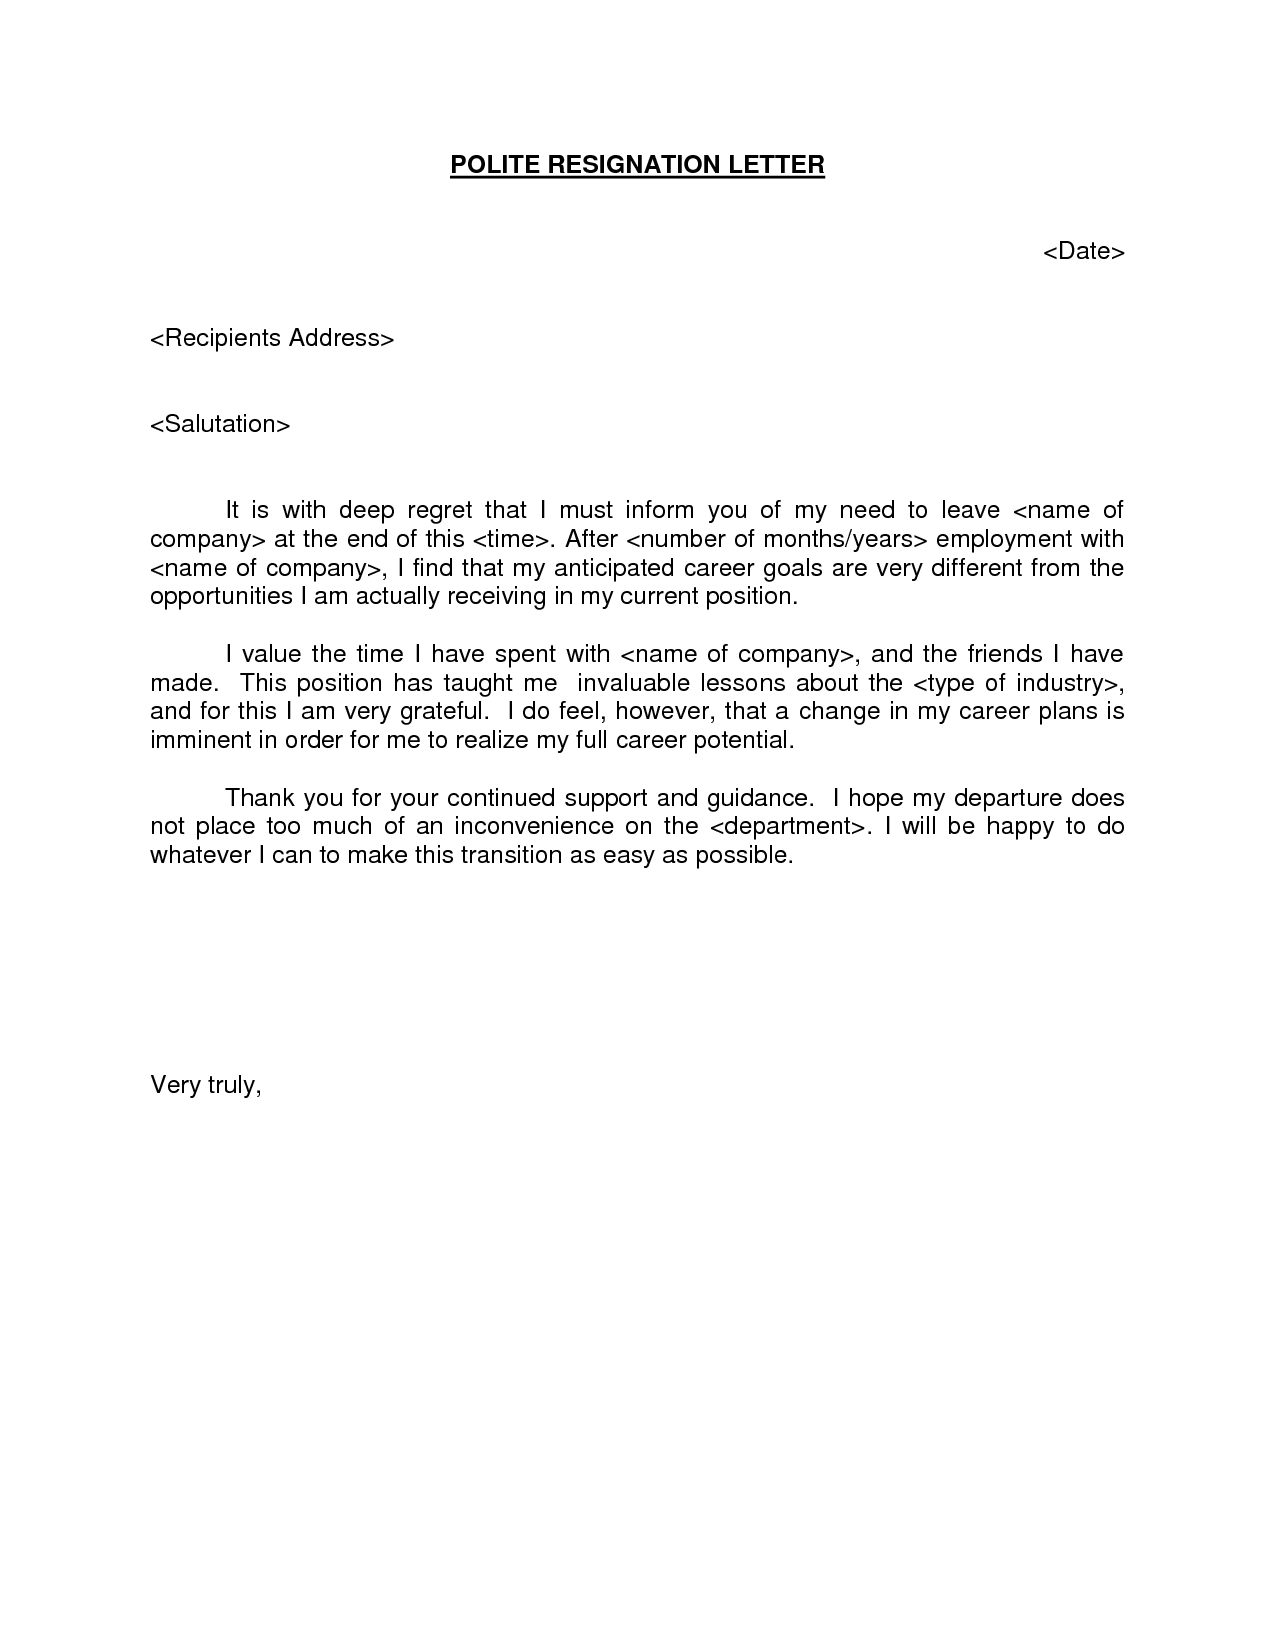 Resignation letter letter of resignation meaning effective resignation letter letter of resignation meaning effective immediately and simple expocarfo Image collections